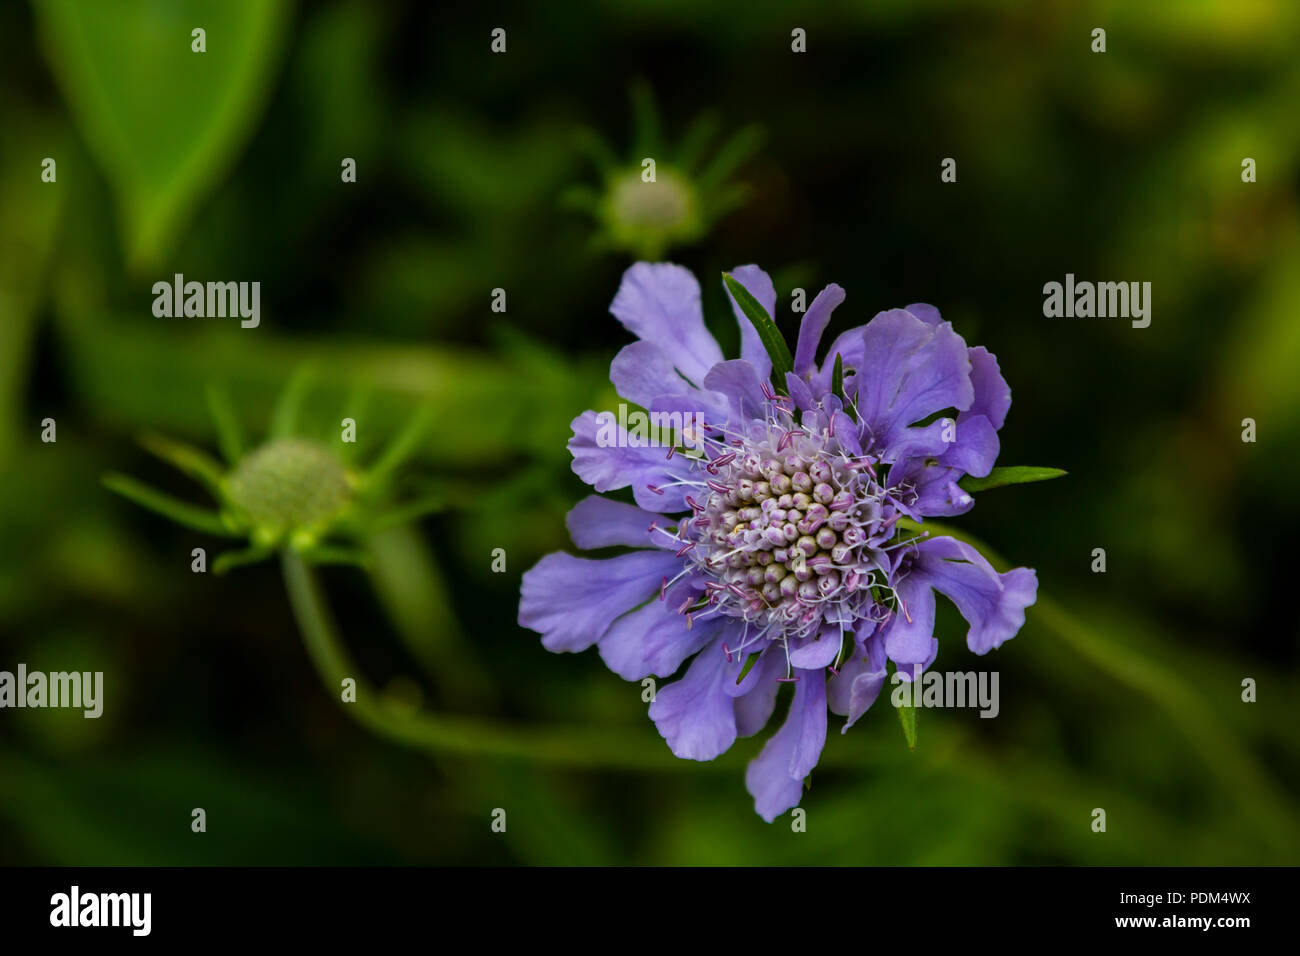 Scabiosa is a genus in the Caprifoliaceae or honeysuckle family. Scabiosa flowers earned the nickname pincushion flower because of their prominent sta - Stock Image